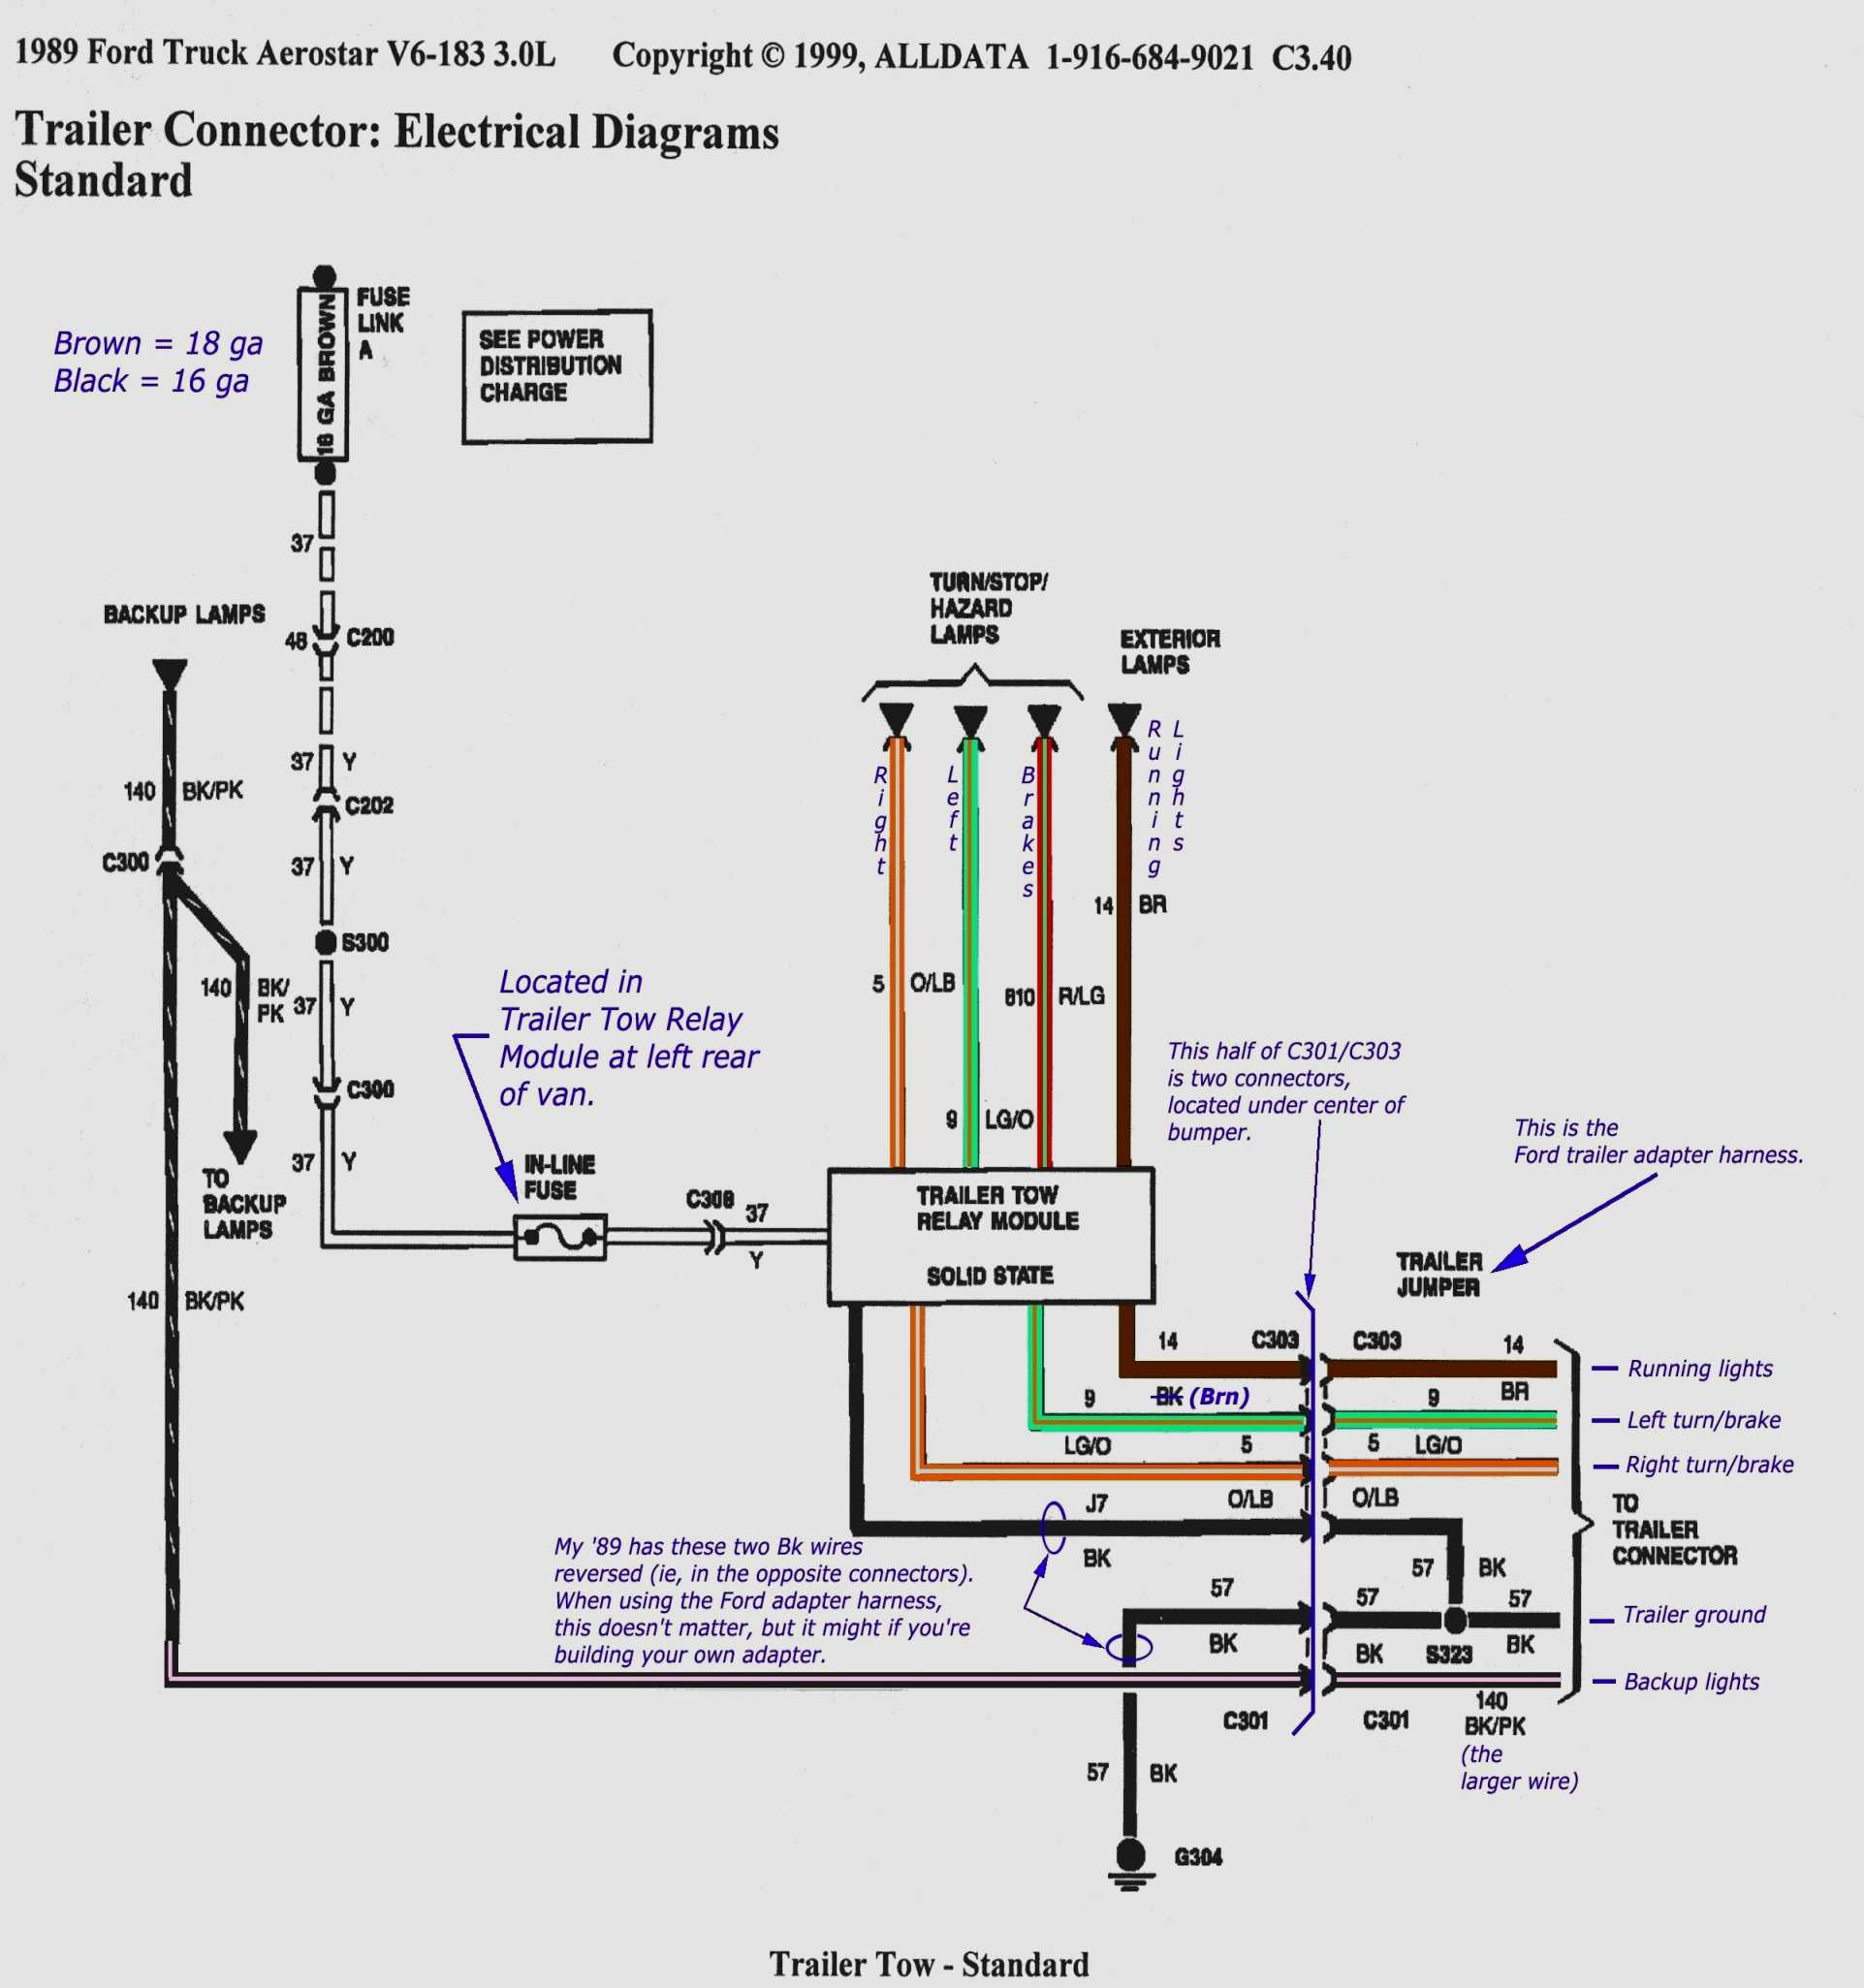 Ford Trailer Wiring Diagram 7 | Wiring Diagram - 1999 Silverado Trailer Wiring Diagram